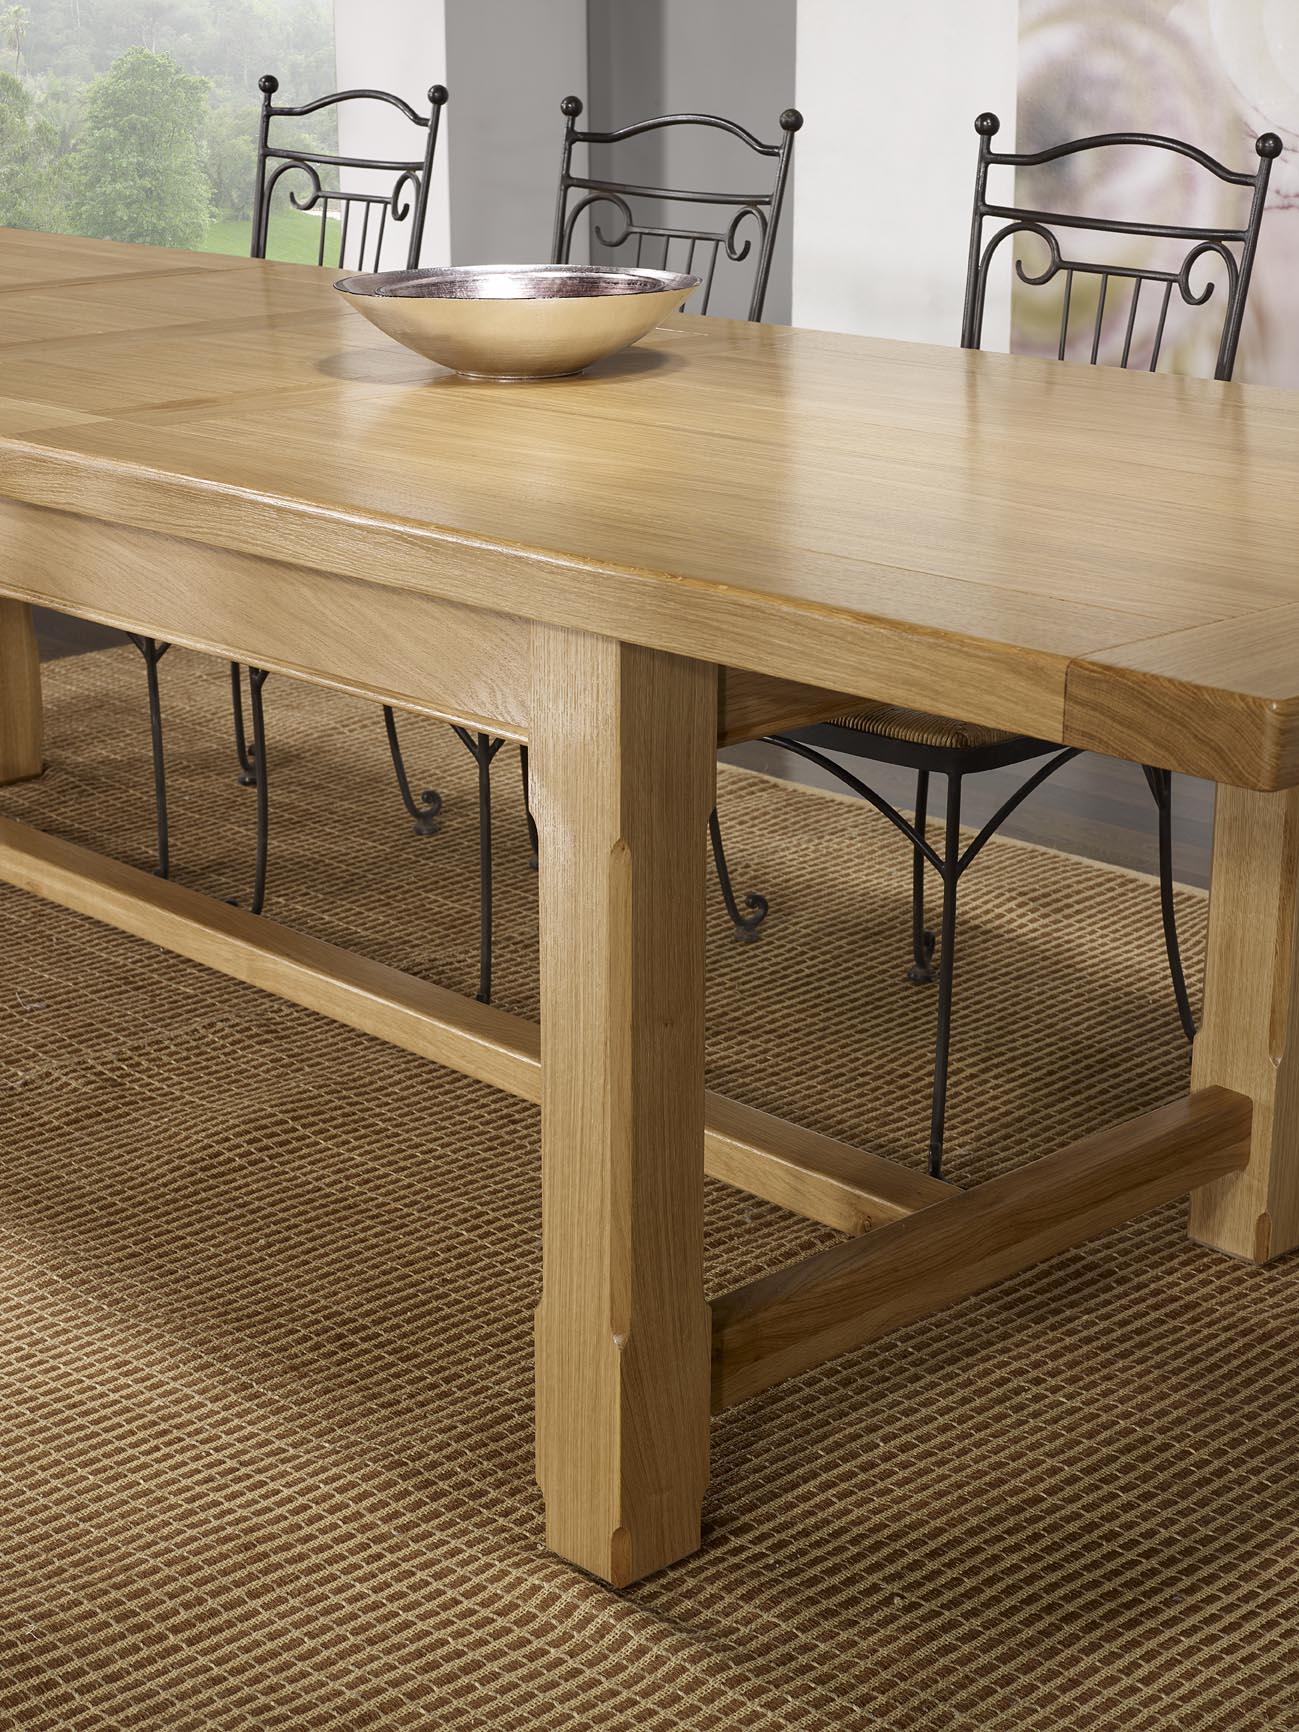 Table De Ferme Axel Realisee En Chene Massif 250x100 2 Allonges